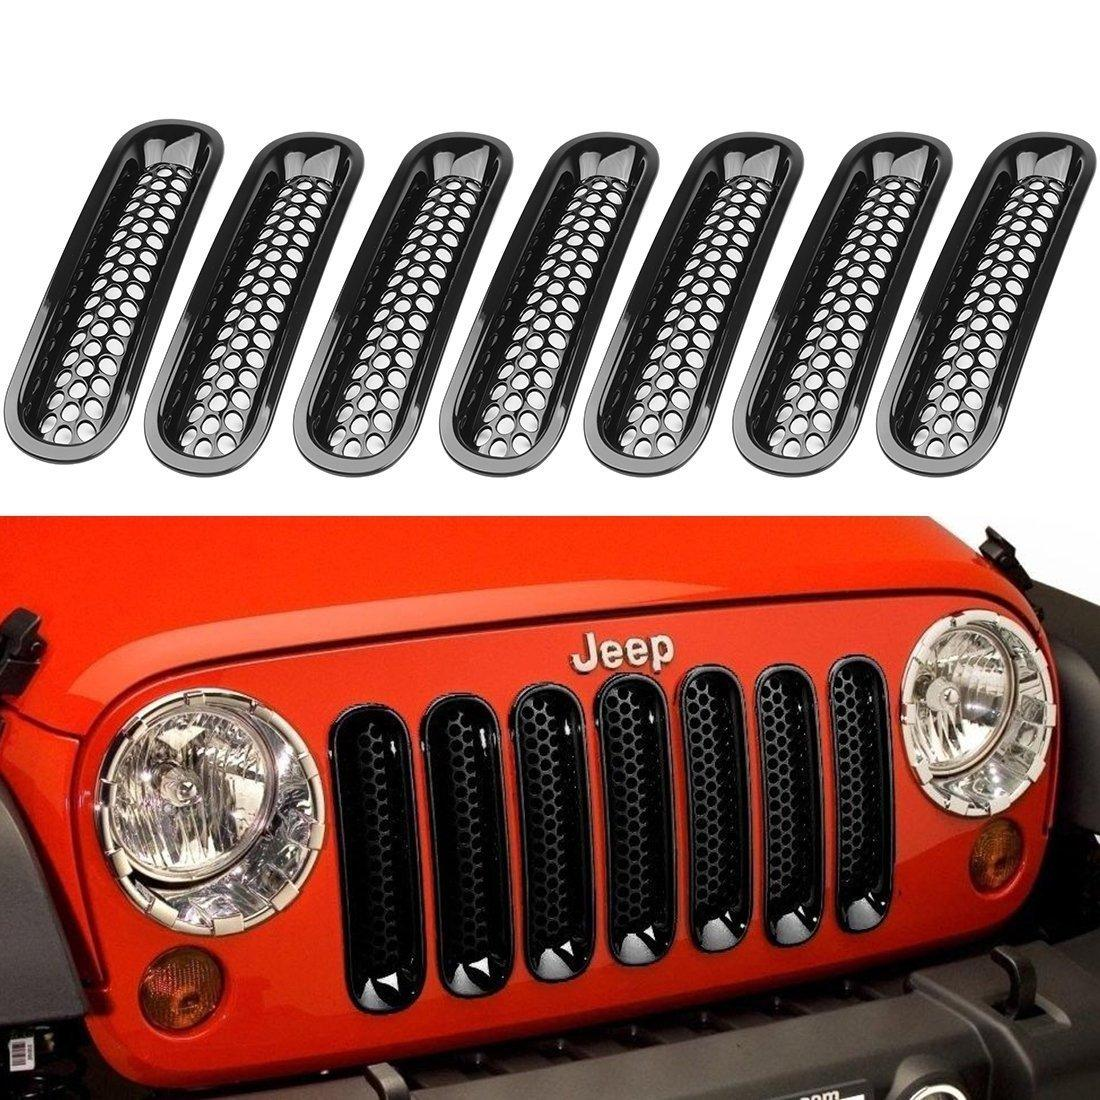 hight resolution of 2019 black front grill mesh grille insert kit for jeep wrangle rubicon sahara jk 2007 2015 from spotlights 109 55 dhgate com